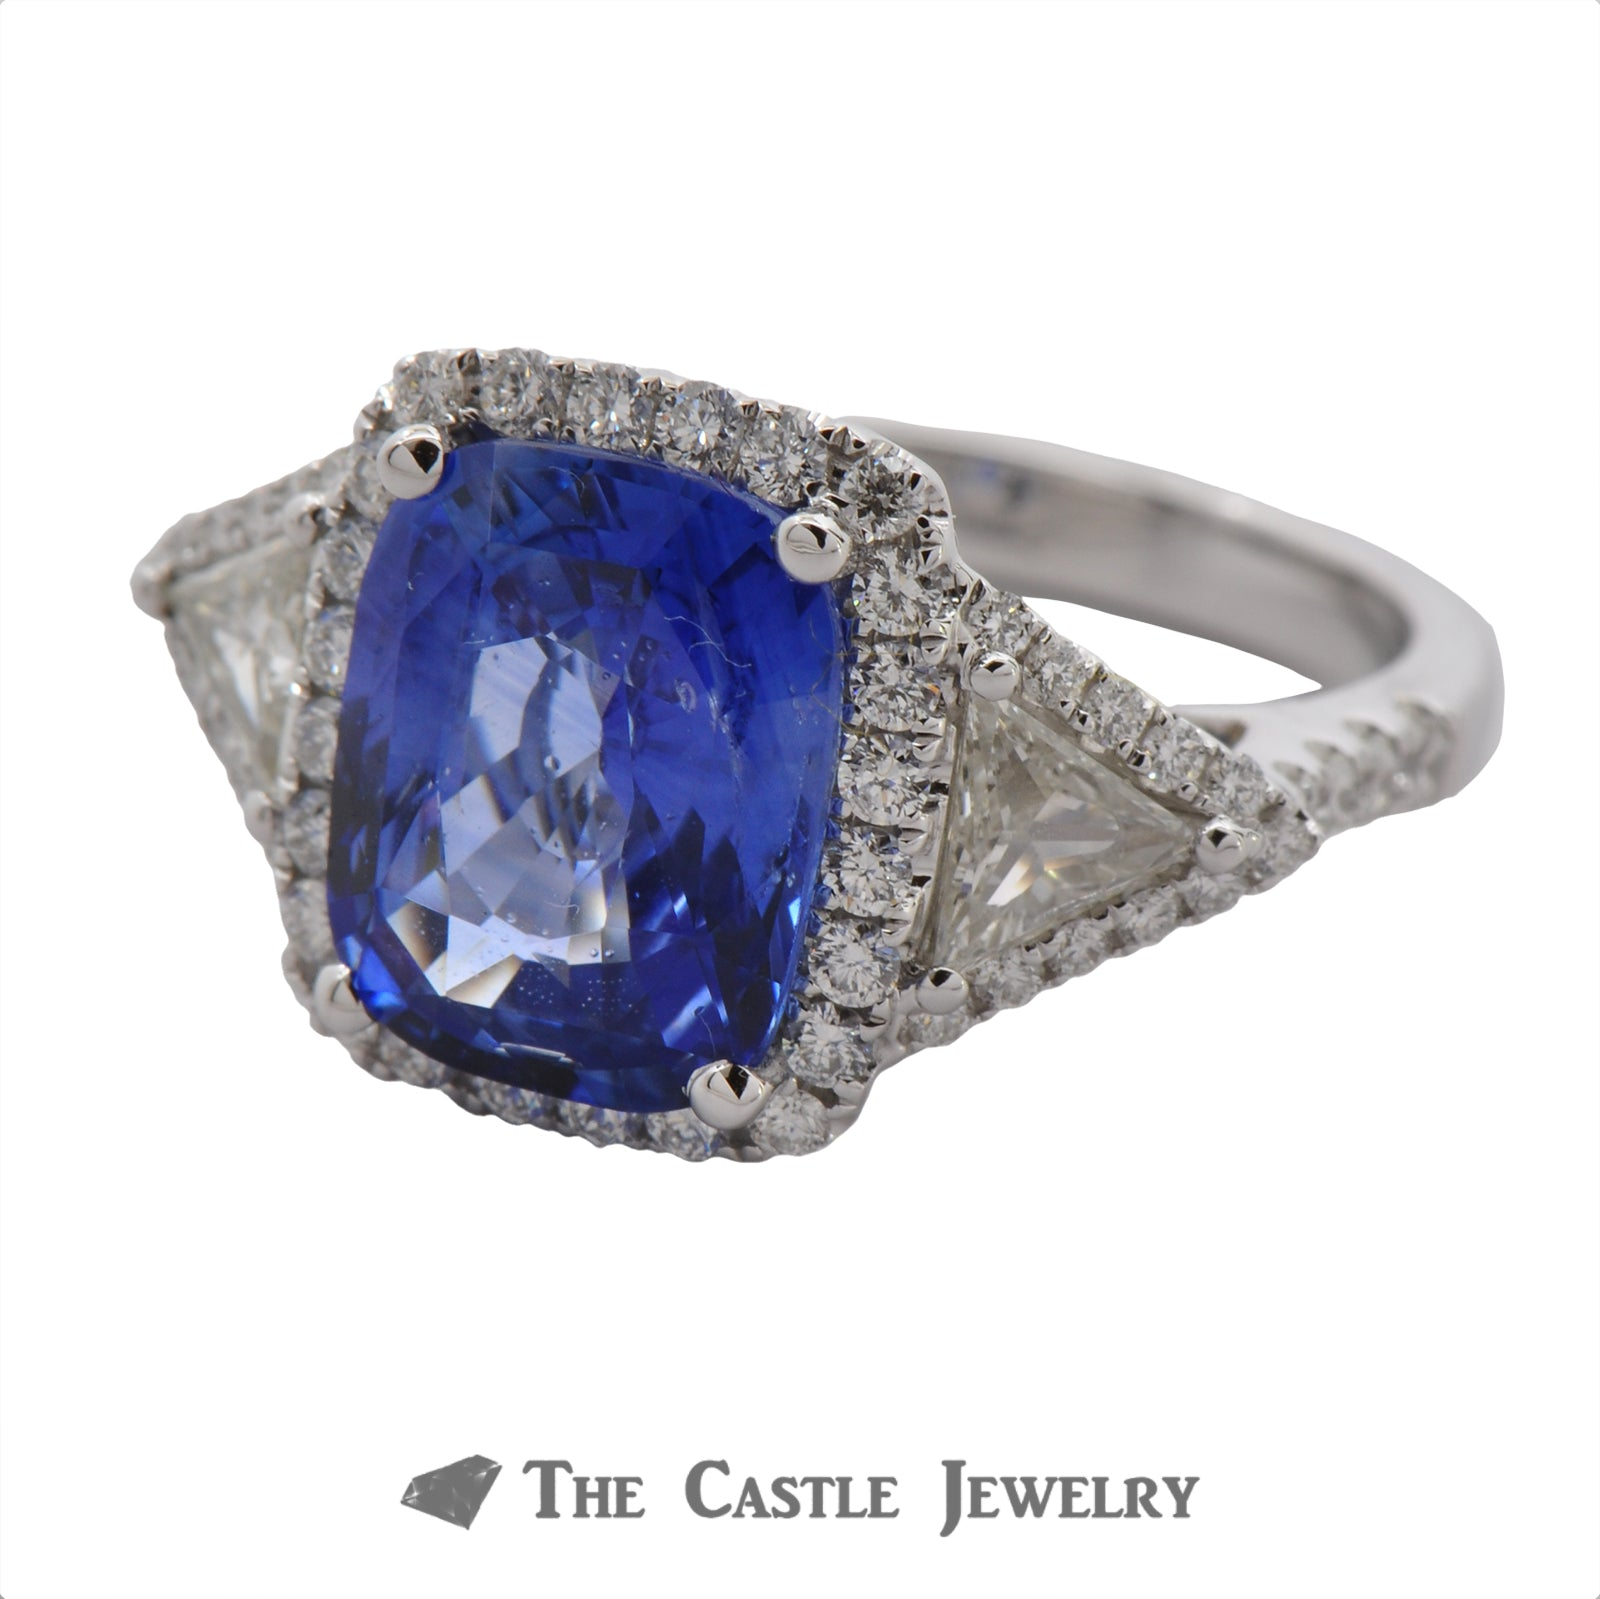 Cushion Cut Sapphire Ring with Trillion & Round Diamond Accents-2